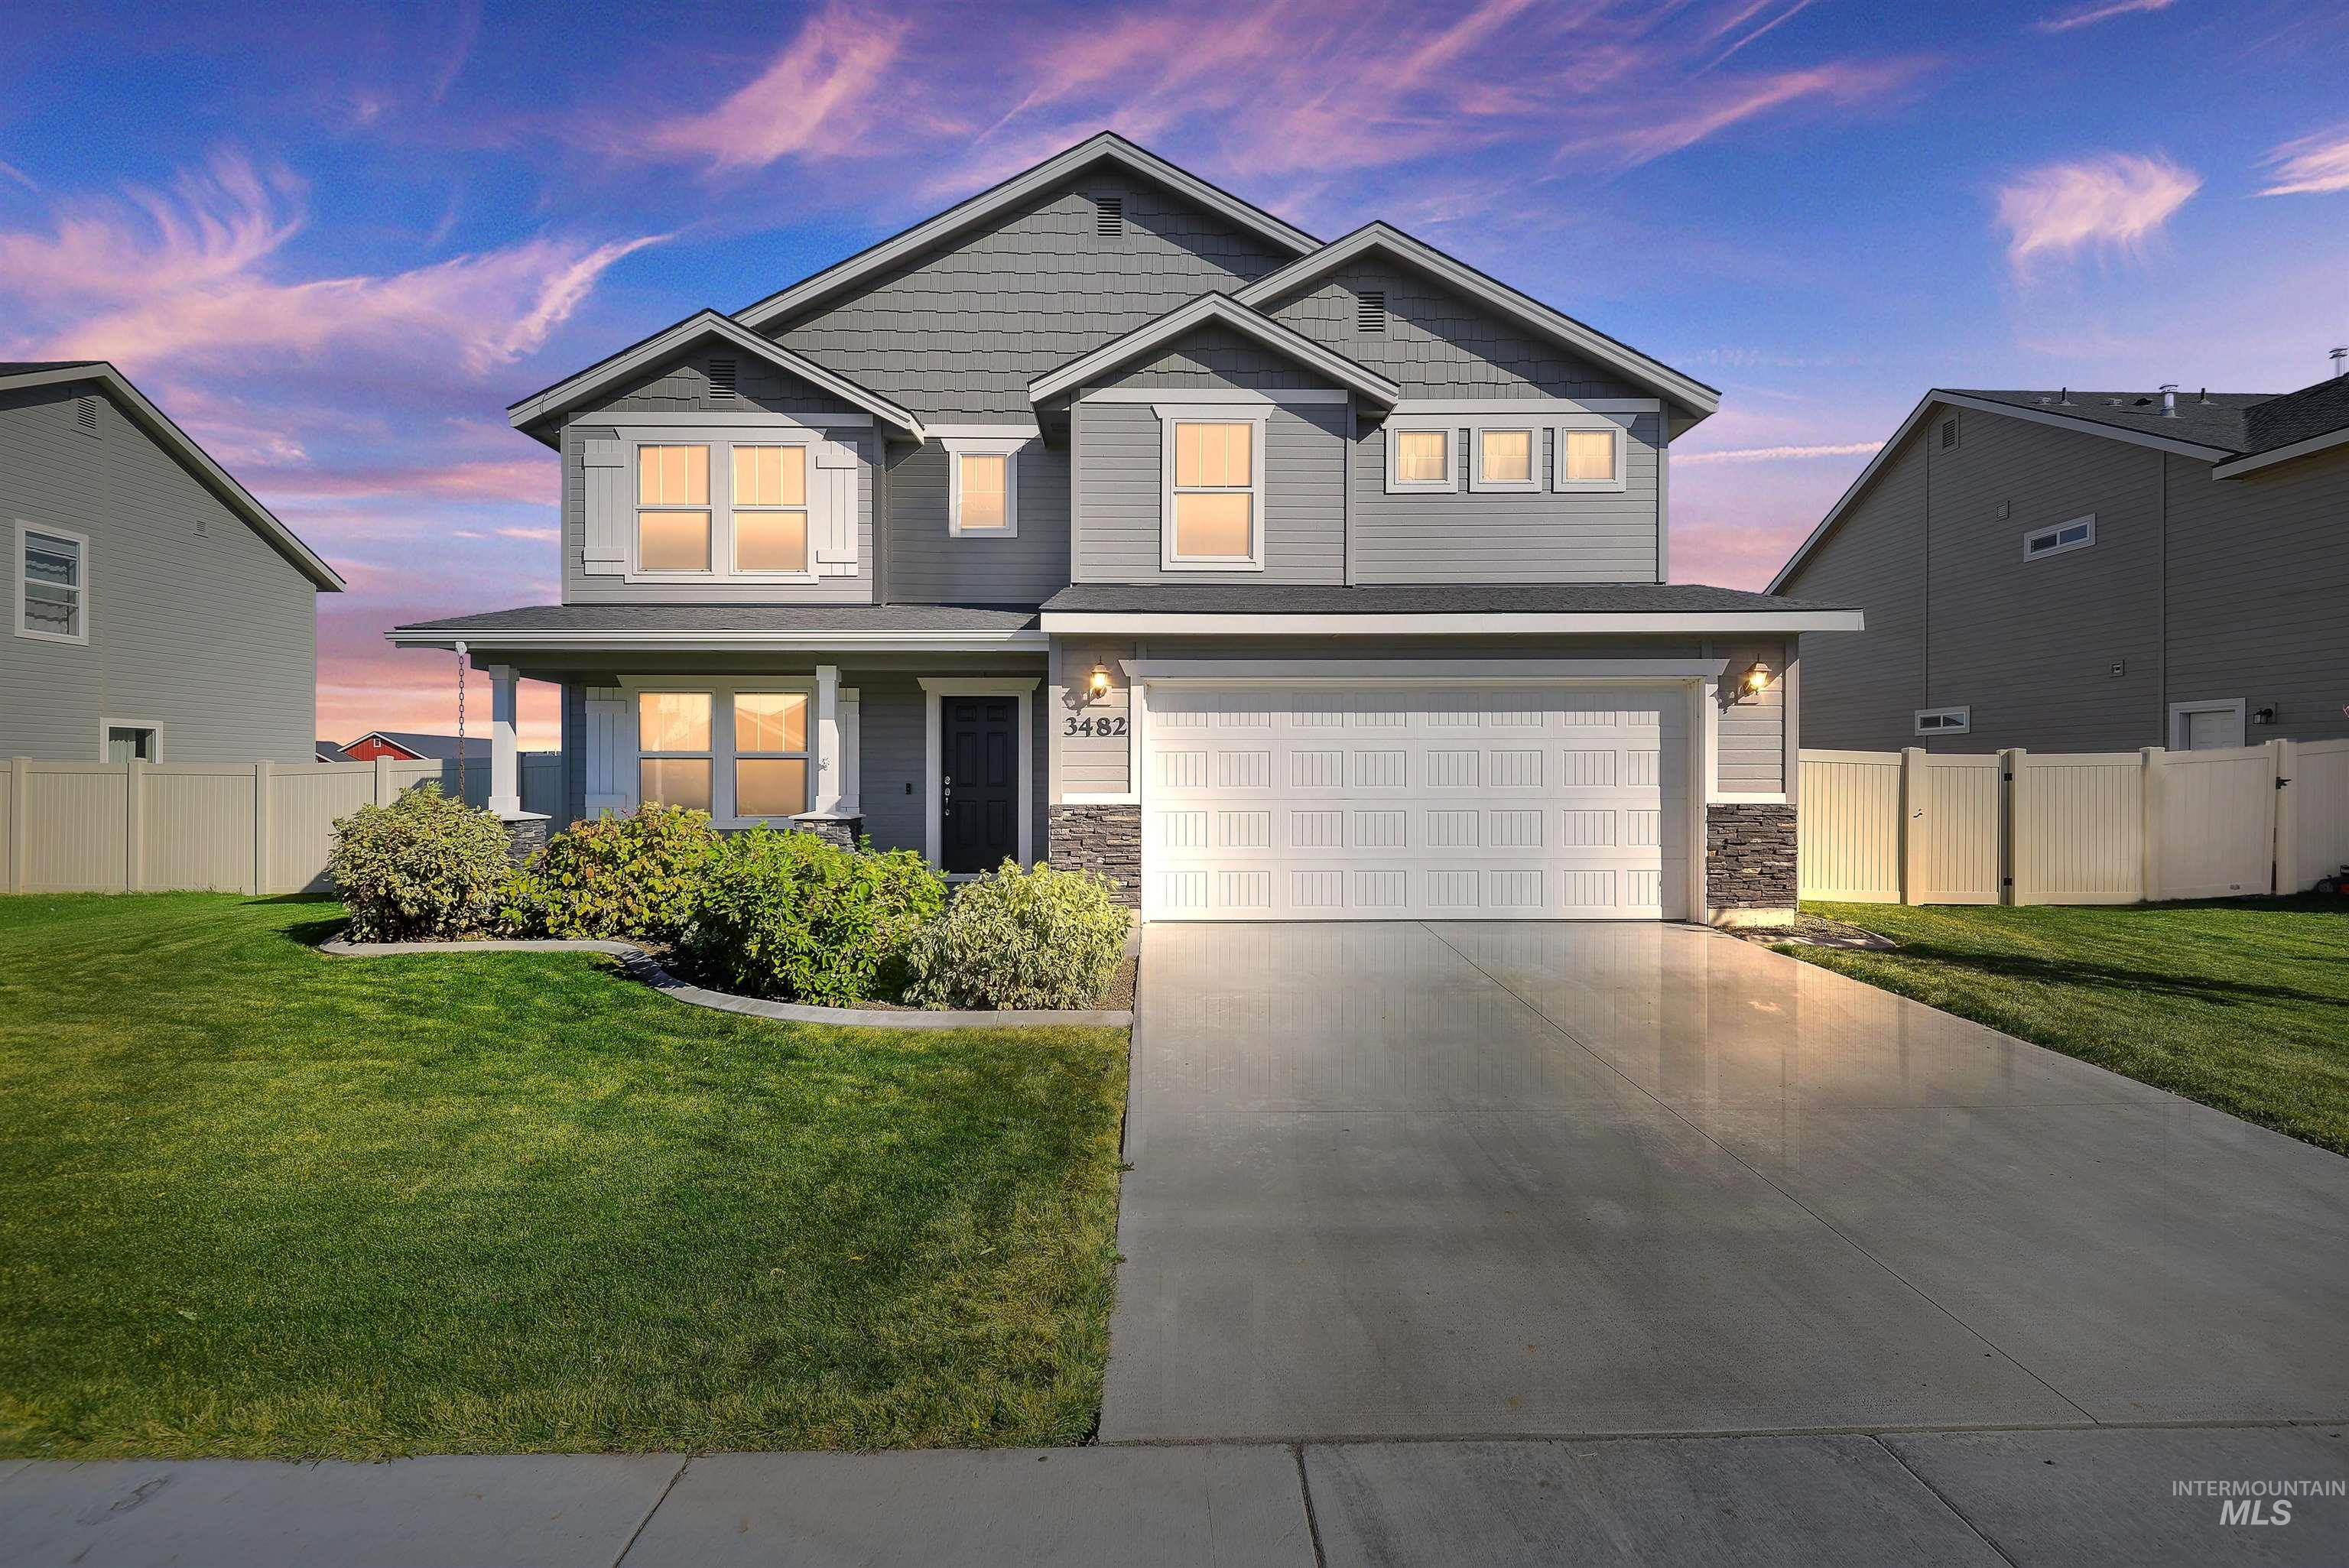 Photo of 3482 Cape Coral Nampa ID 83686